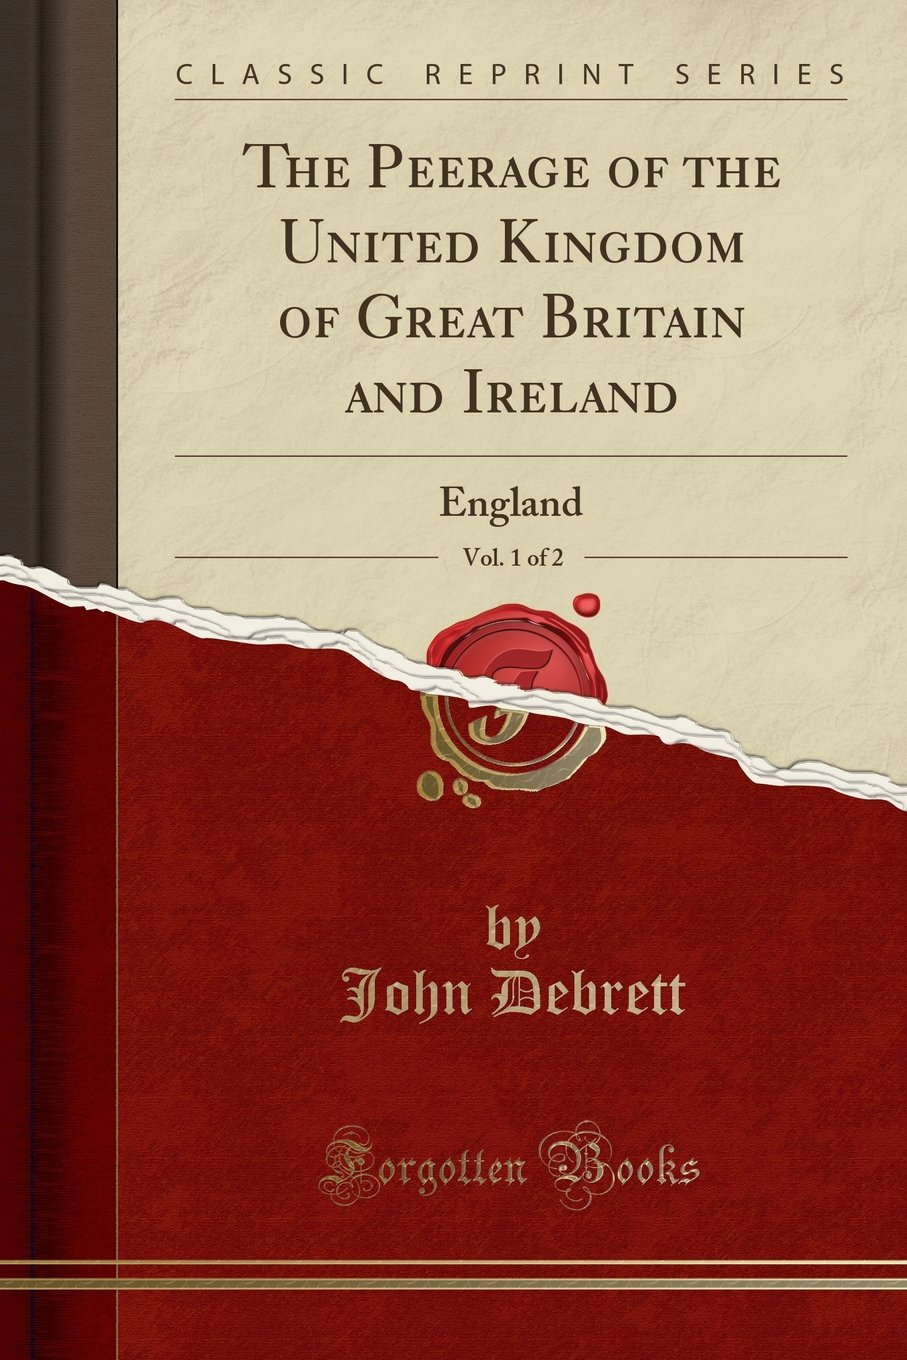 The Peerage of the United Kingdom of Great Britain and Ireland, Vol. 1 of 2: England (Classic Reprint)